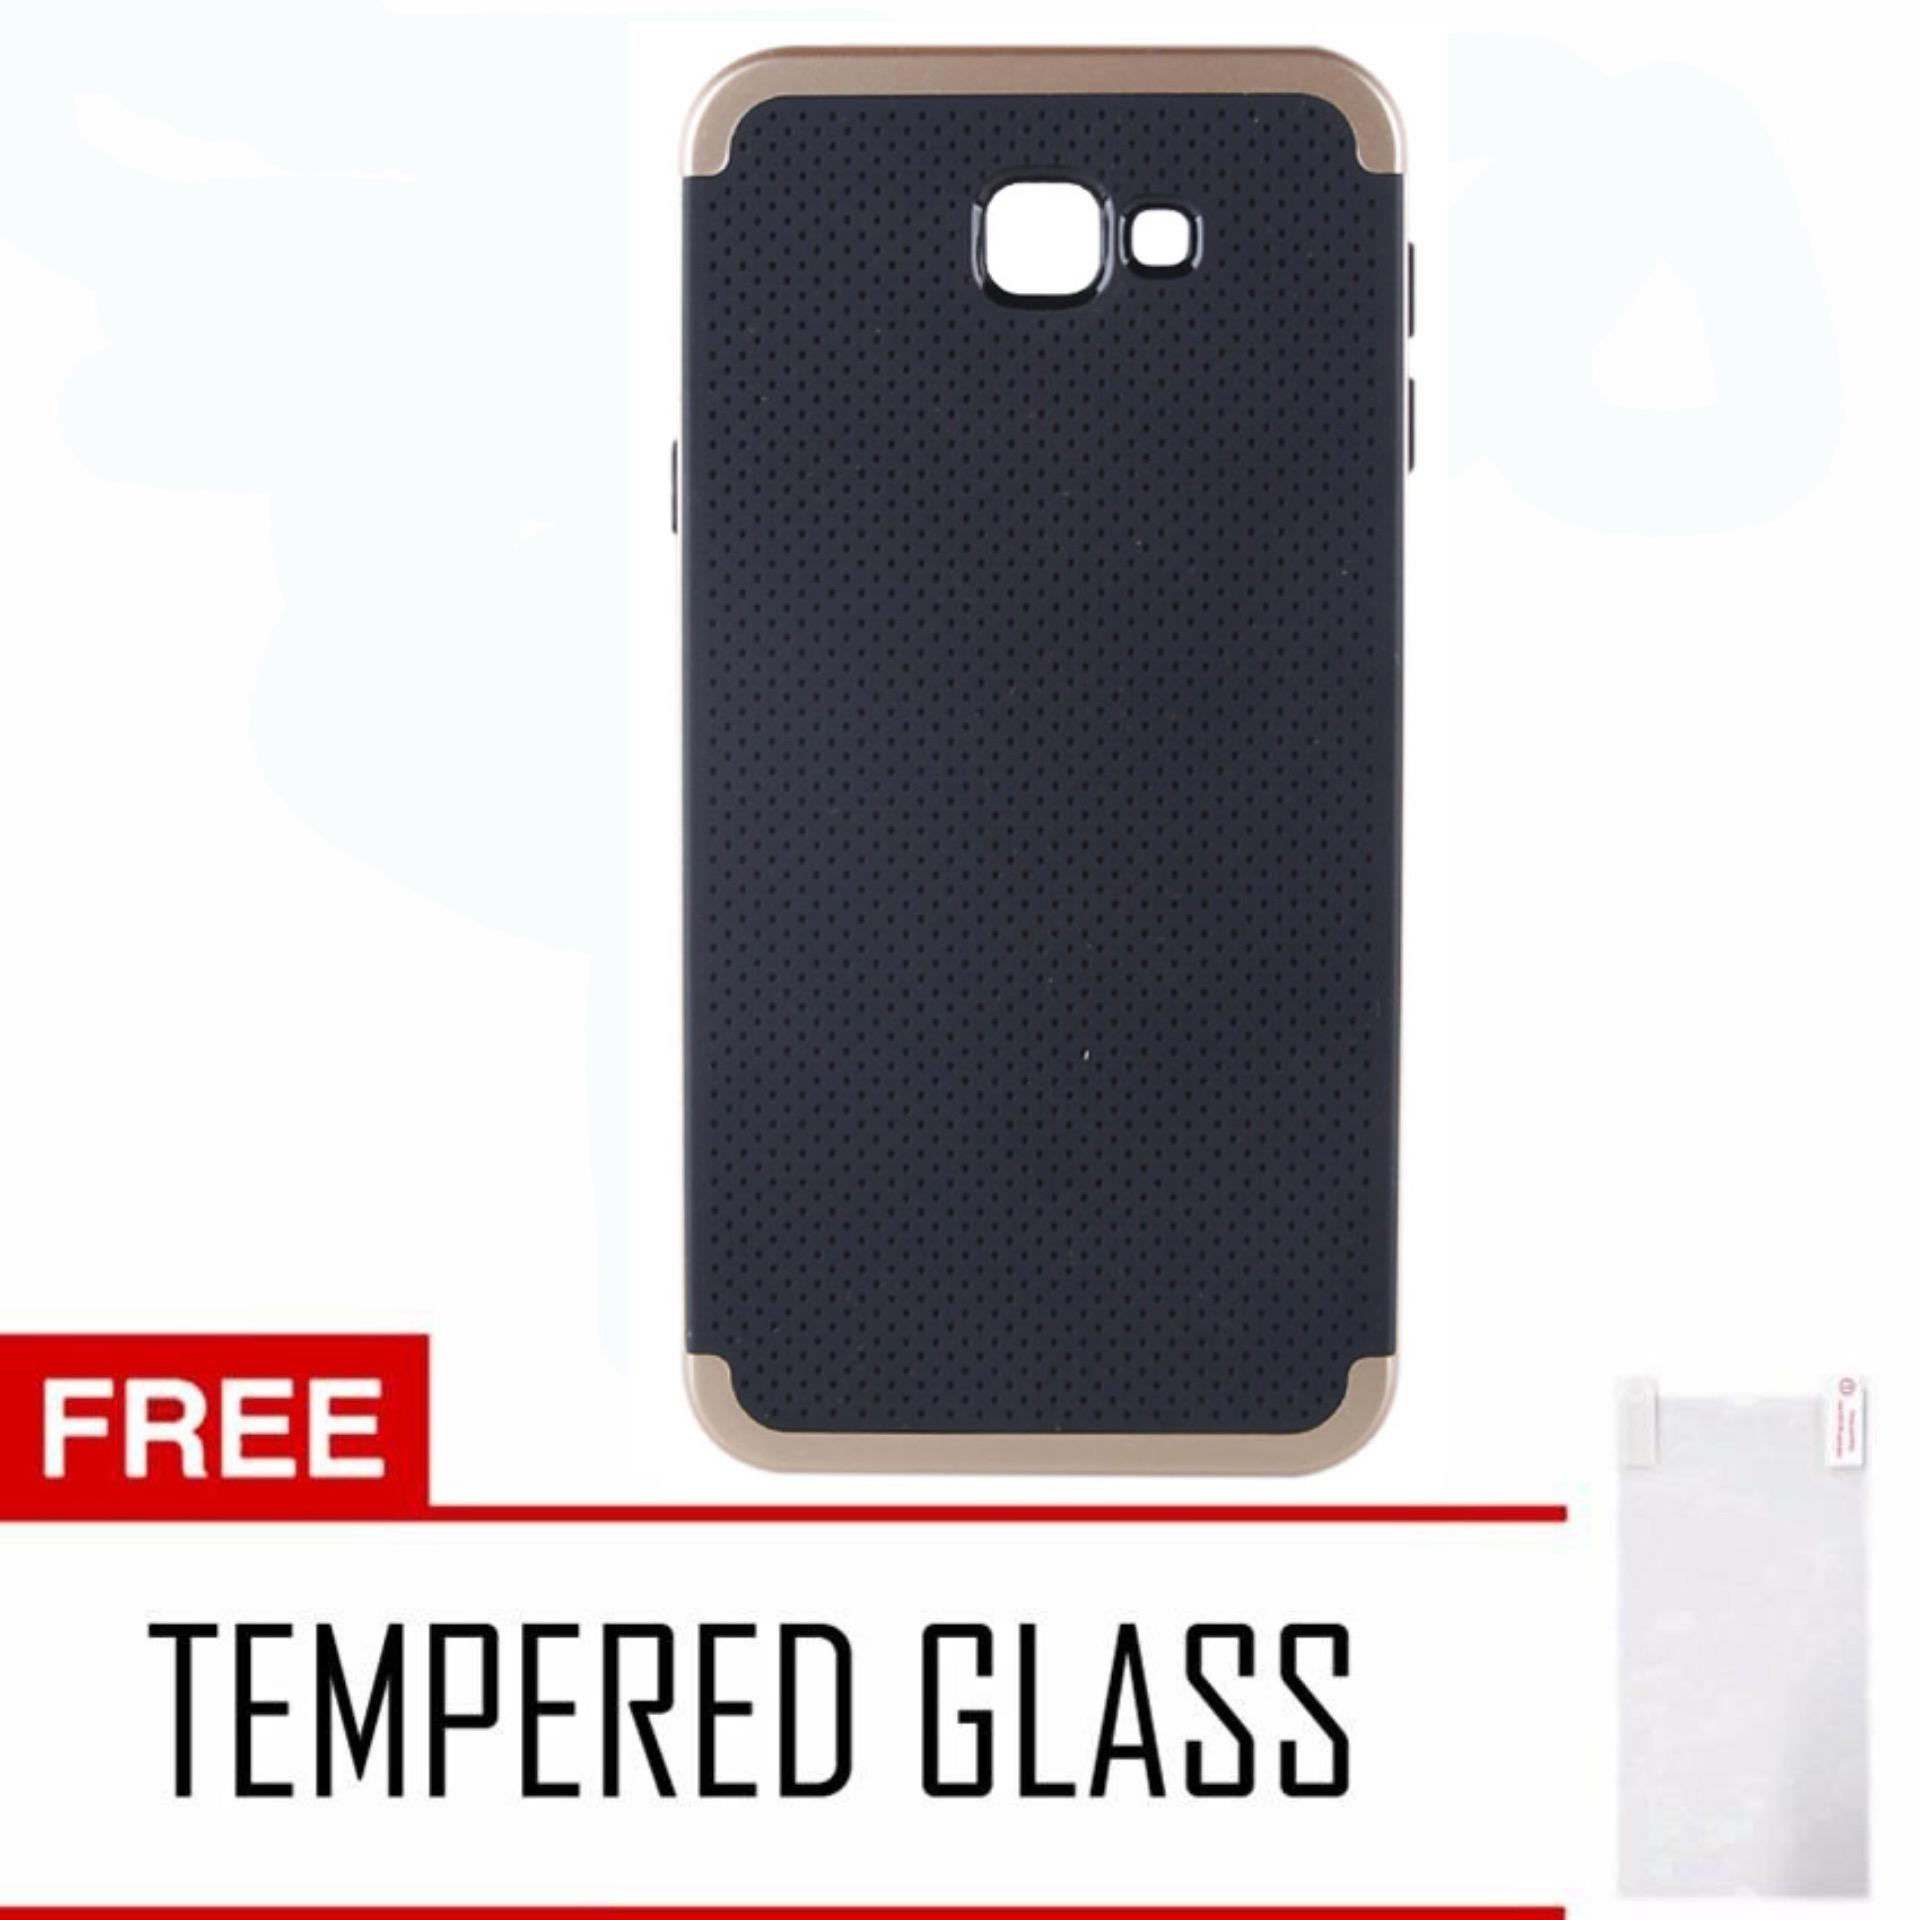 Jual Cover For Samsung Galaxy On7 2016 J7 Prime On Nxt Case Source . Source · Case Samsung Galaxy J7 Prime iPaky Neo Hybrid - Gold + FreeTempered Glass